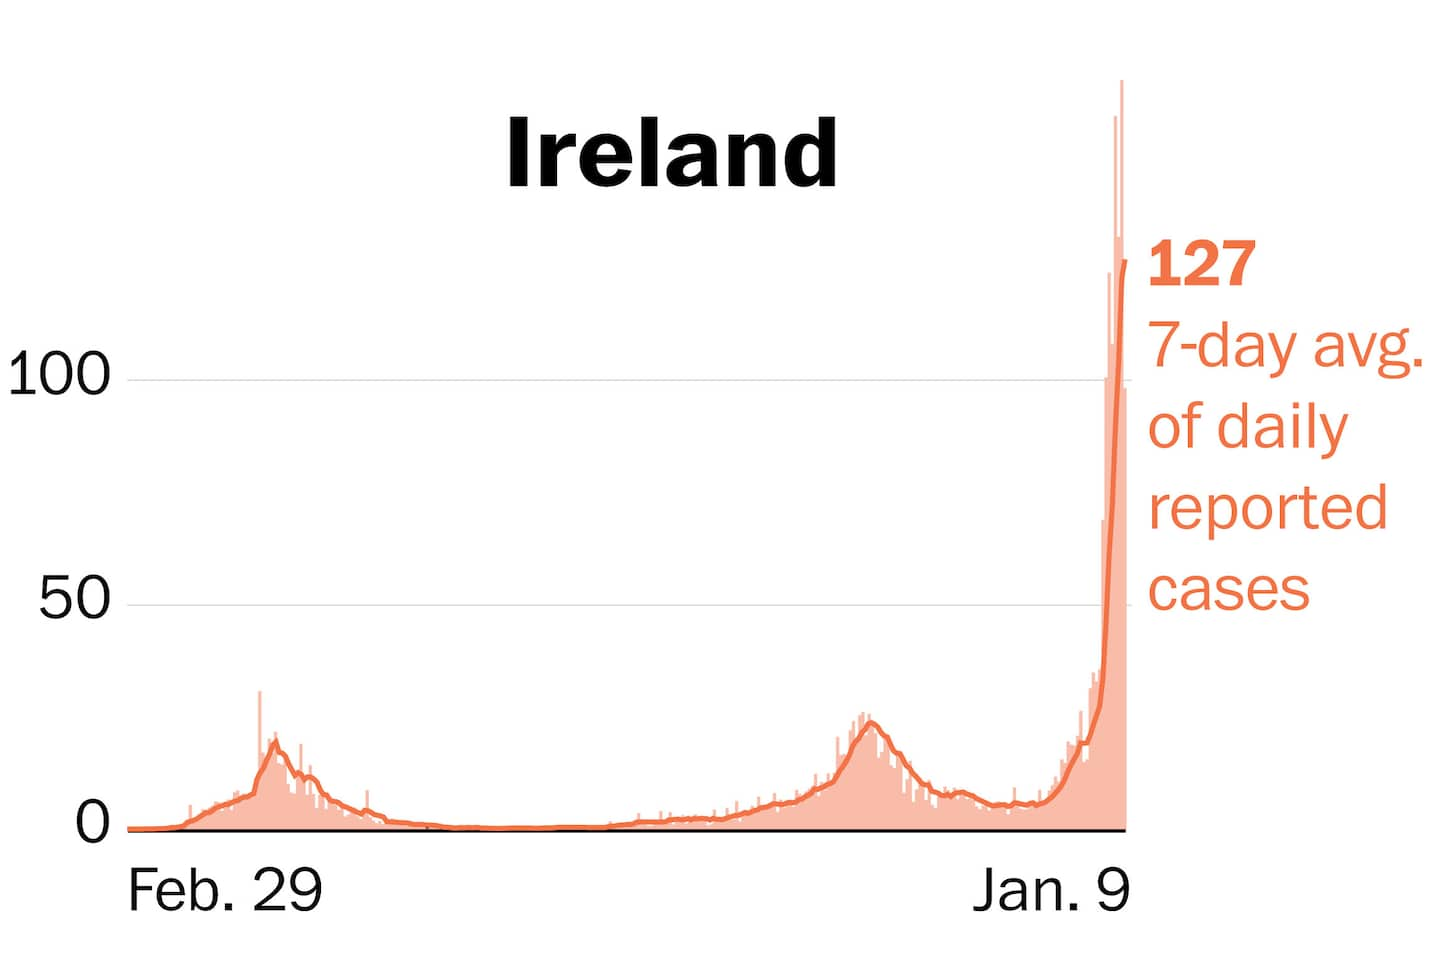 Ireland's covid curve skyrockets to highest coronavirus rate in the world